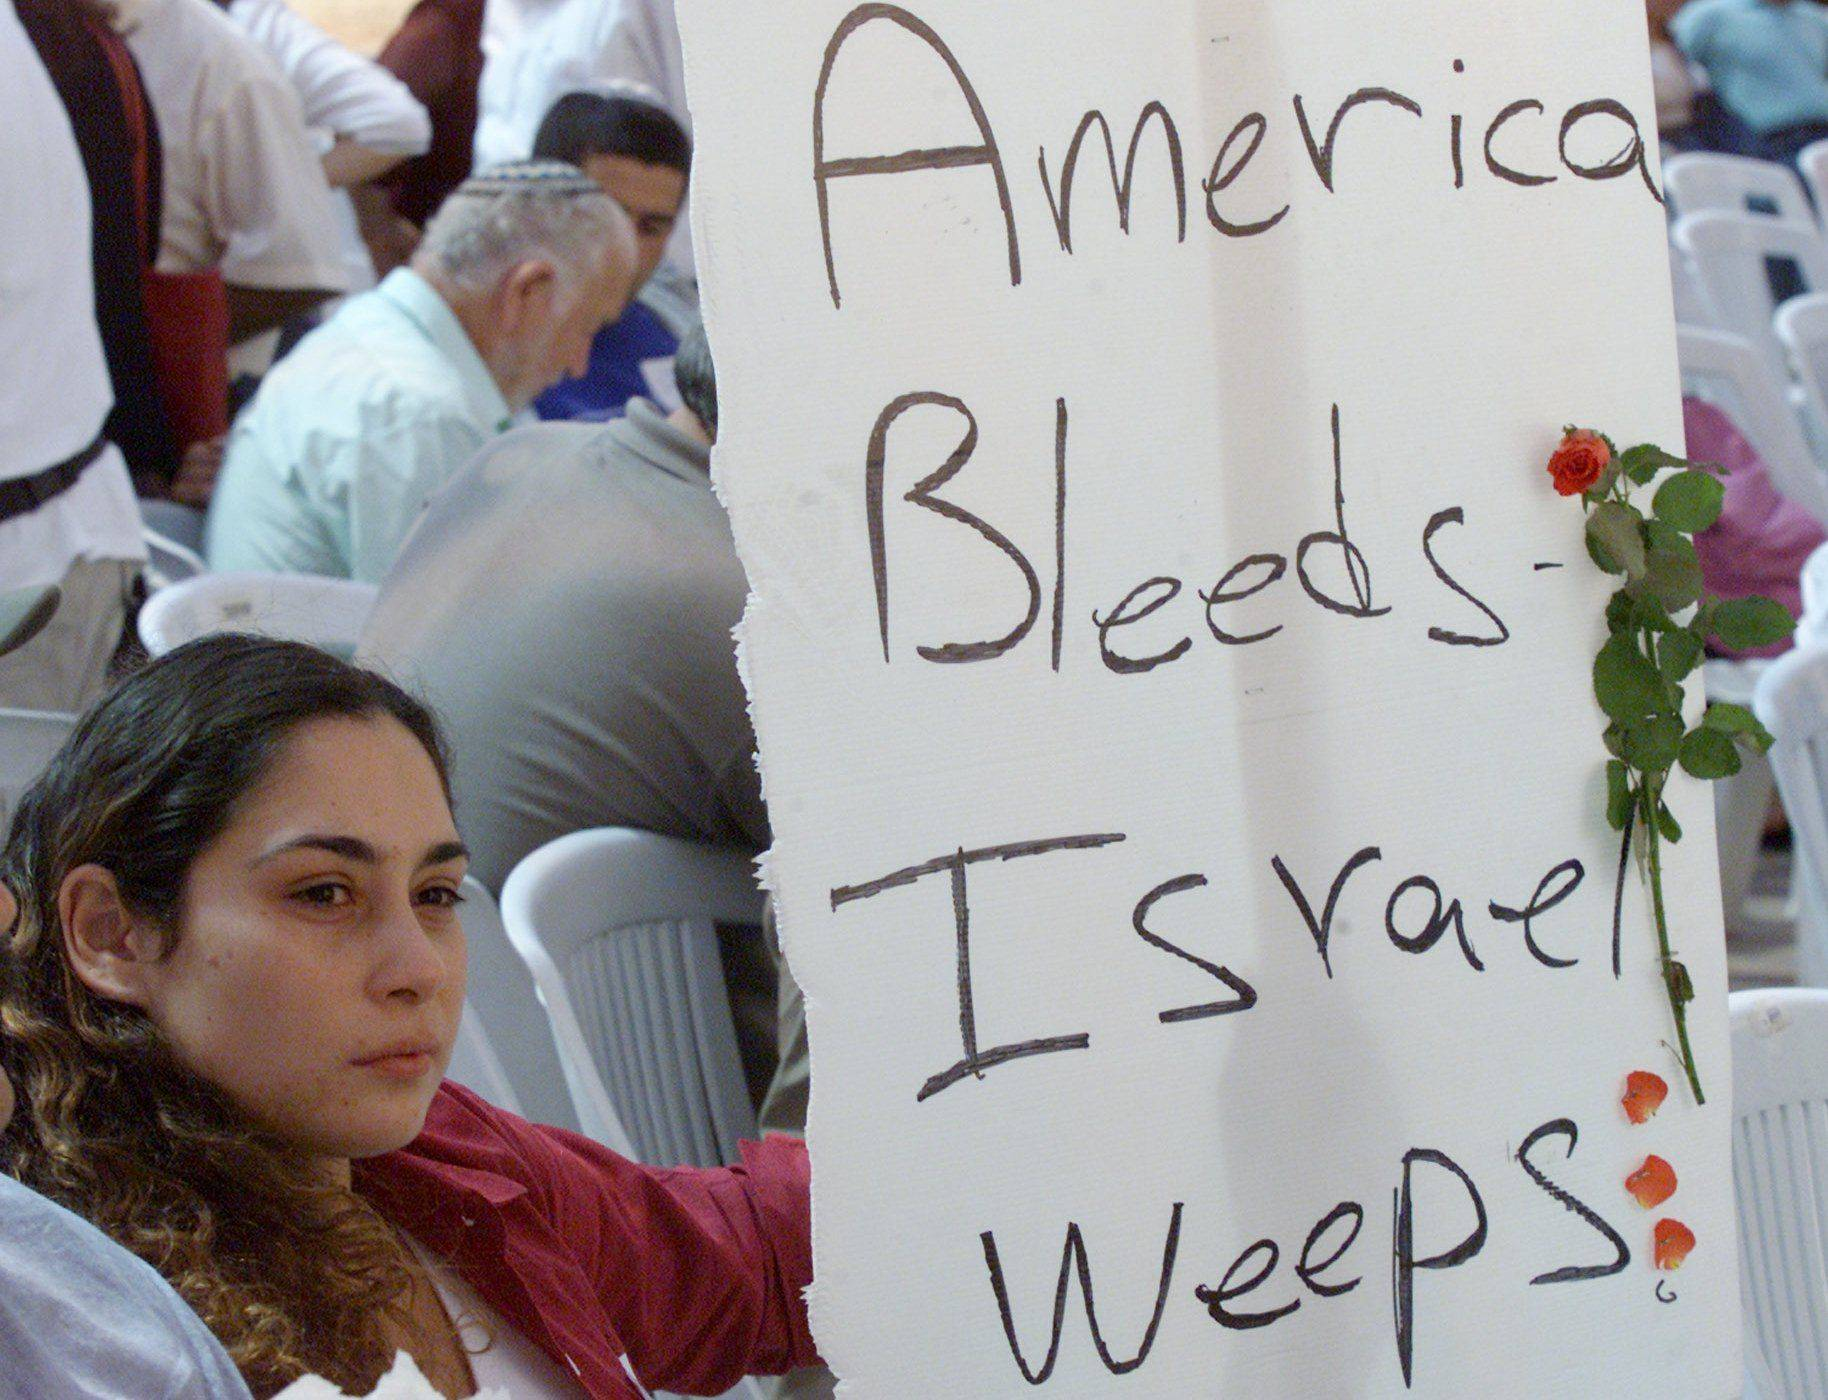 Israeli Moran Cohen holds a sign in support of the victims of Sept. 11 attacks in the United States during a ceremony in Jerusalem on Sept. 12, 2001.